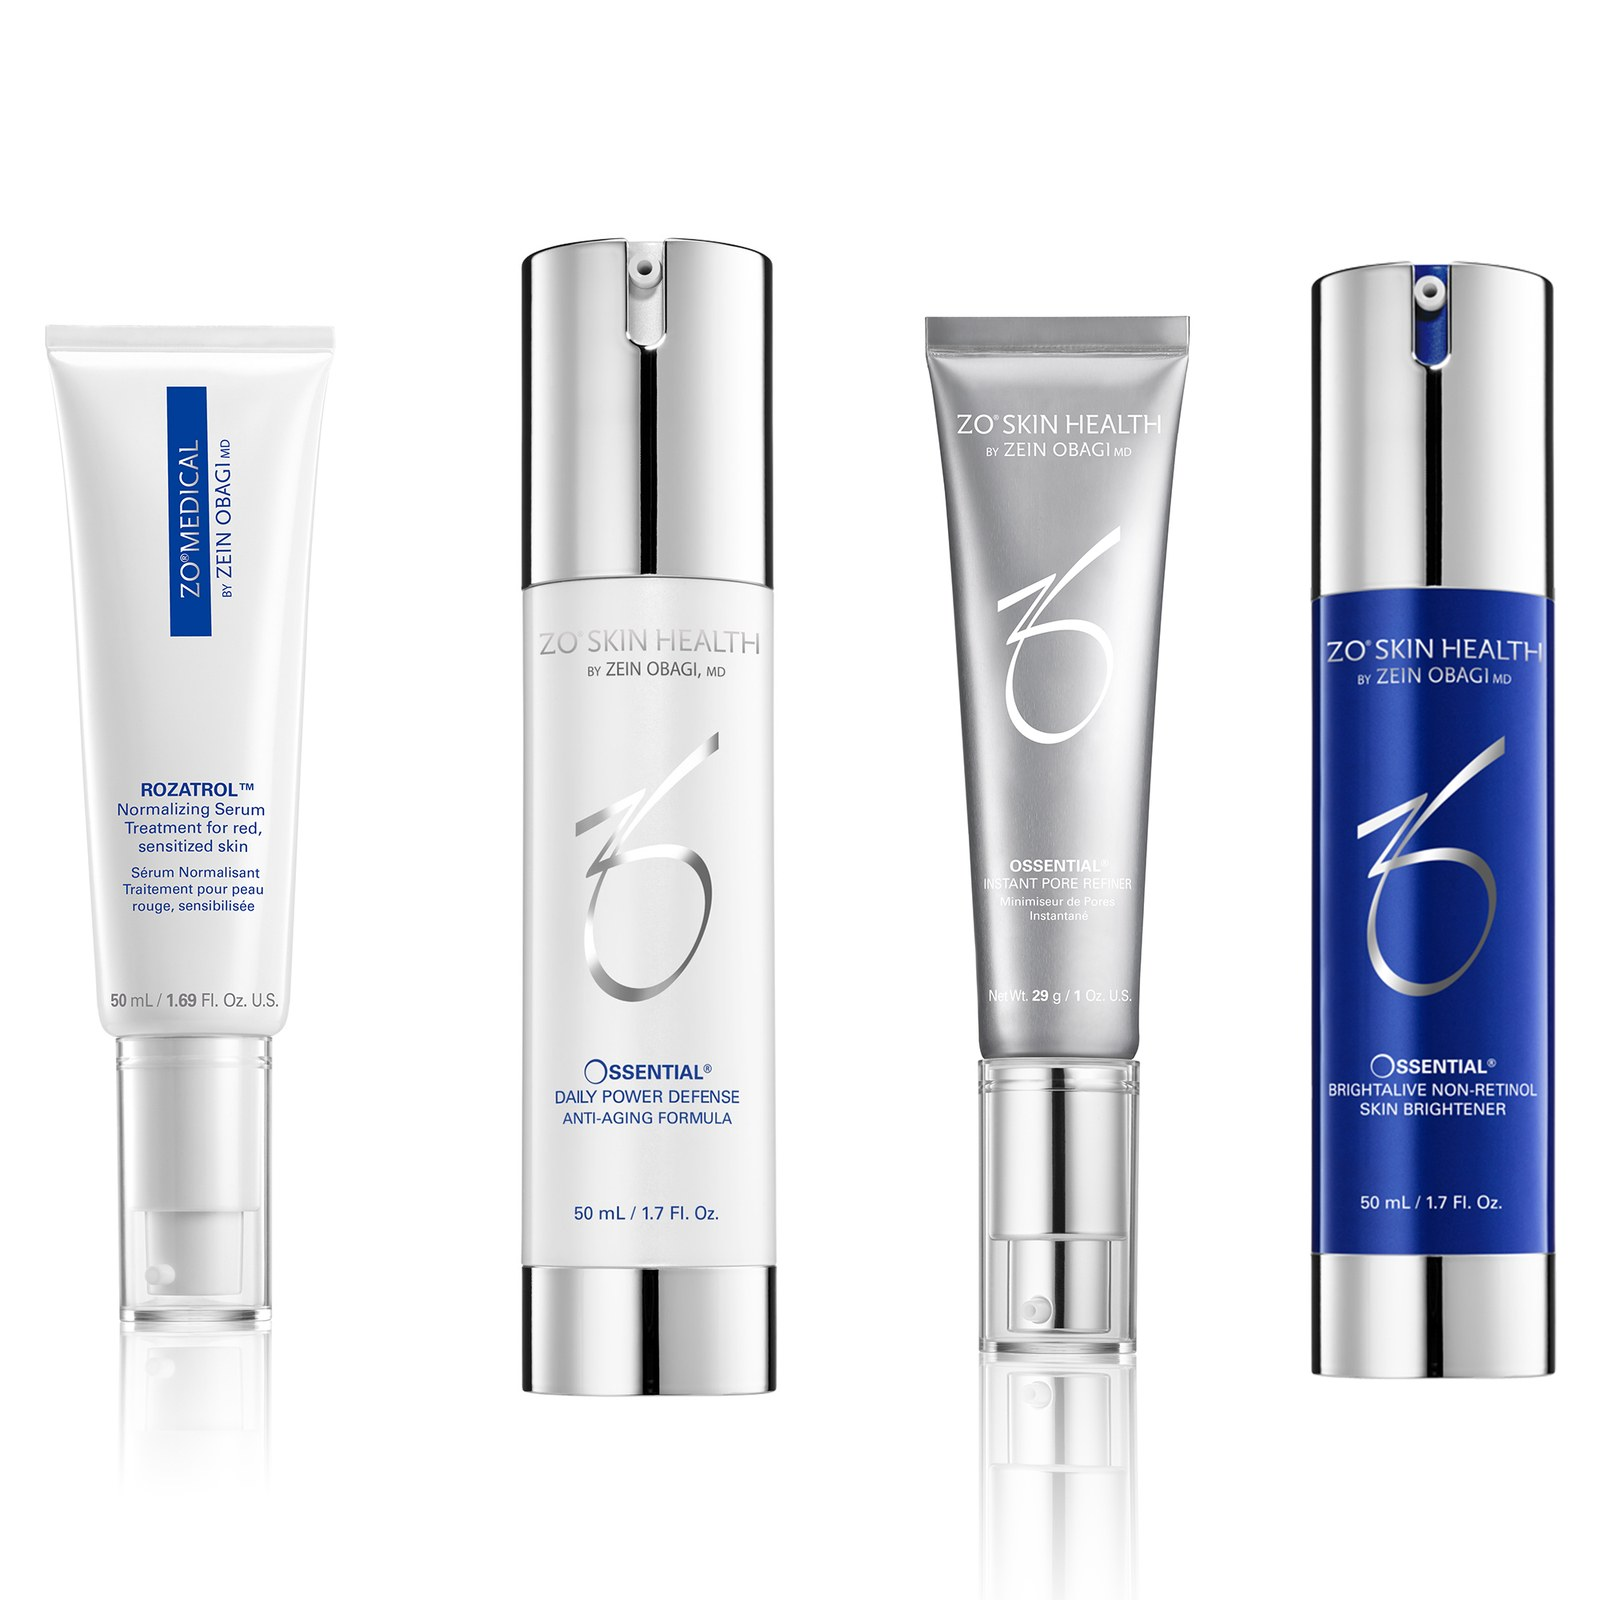 The 6 Best Skin Care Lines Made By Dermatologists And Plastic Surgeons Skin Care Brands Best Skin Care Brands Anti Aging Skin Care